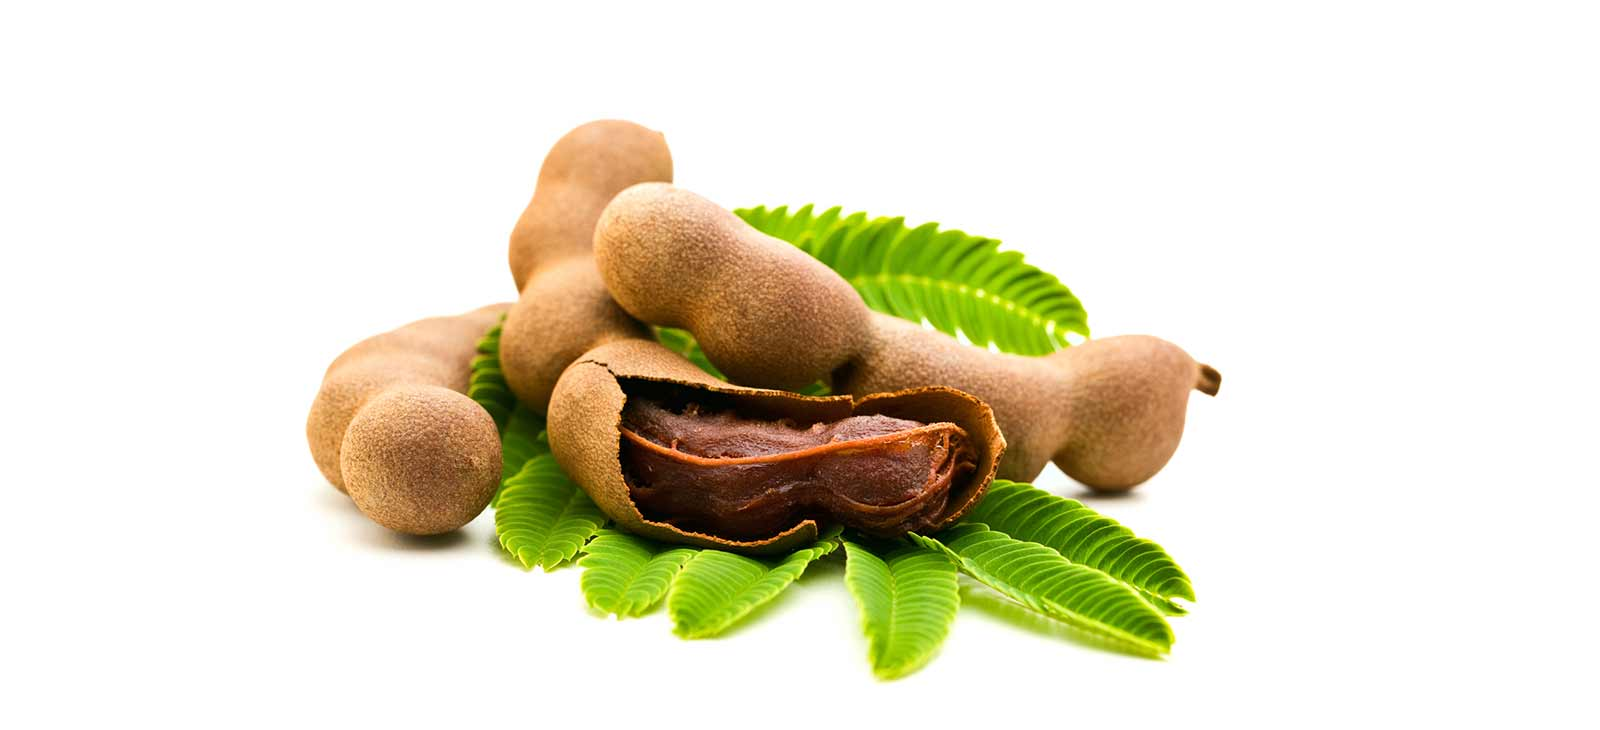 4 Healthy Benefits Of The Tamarind Fruit